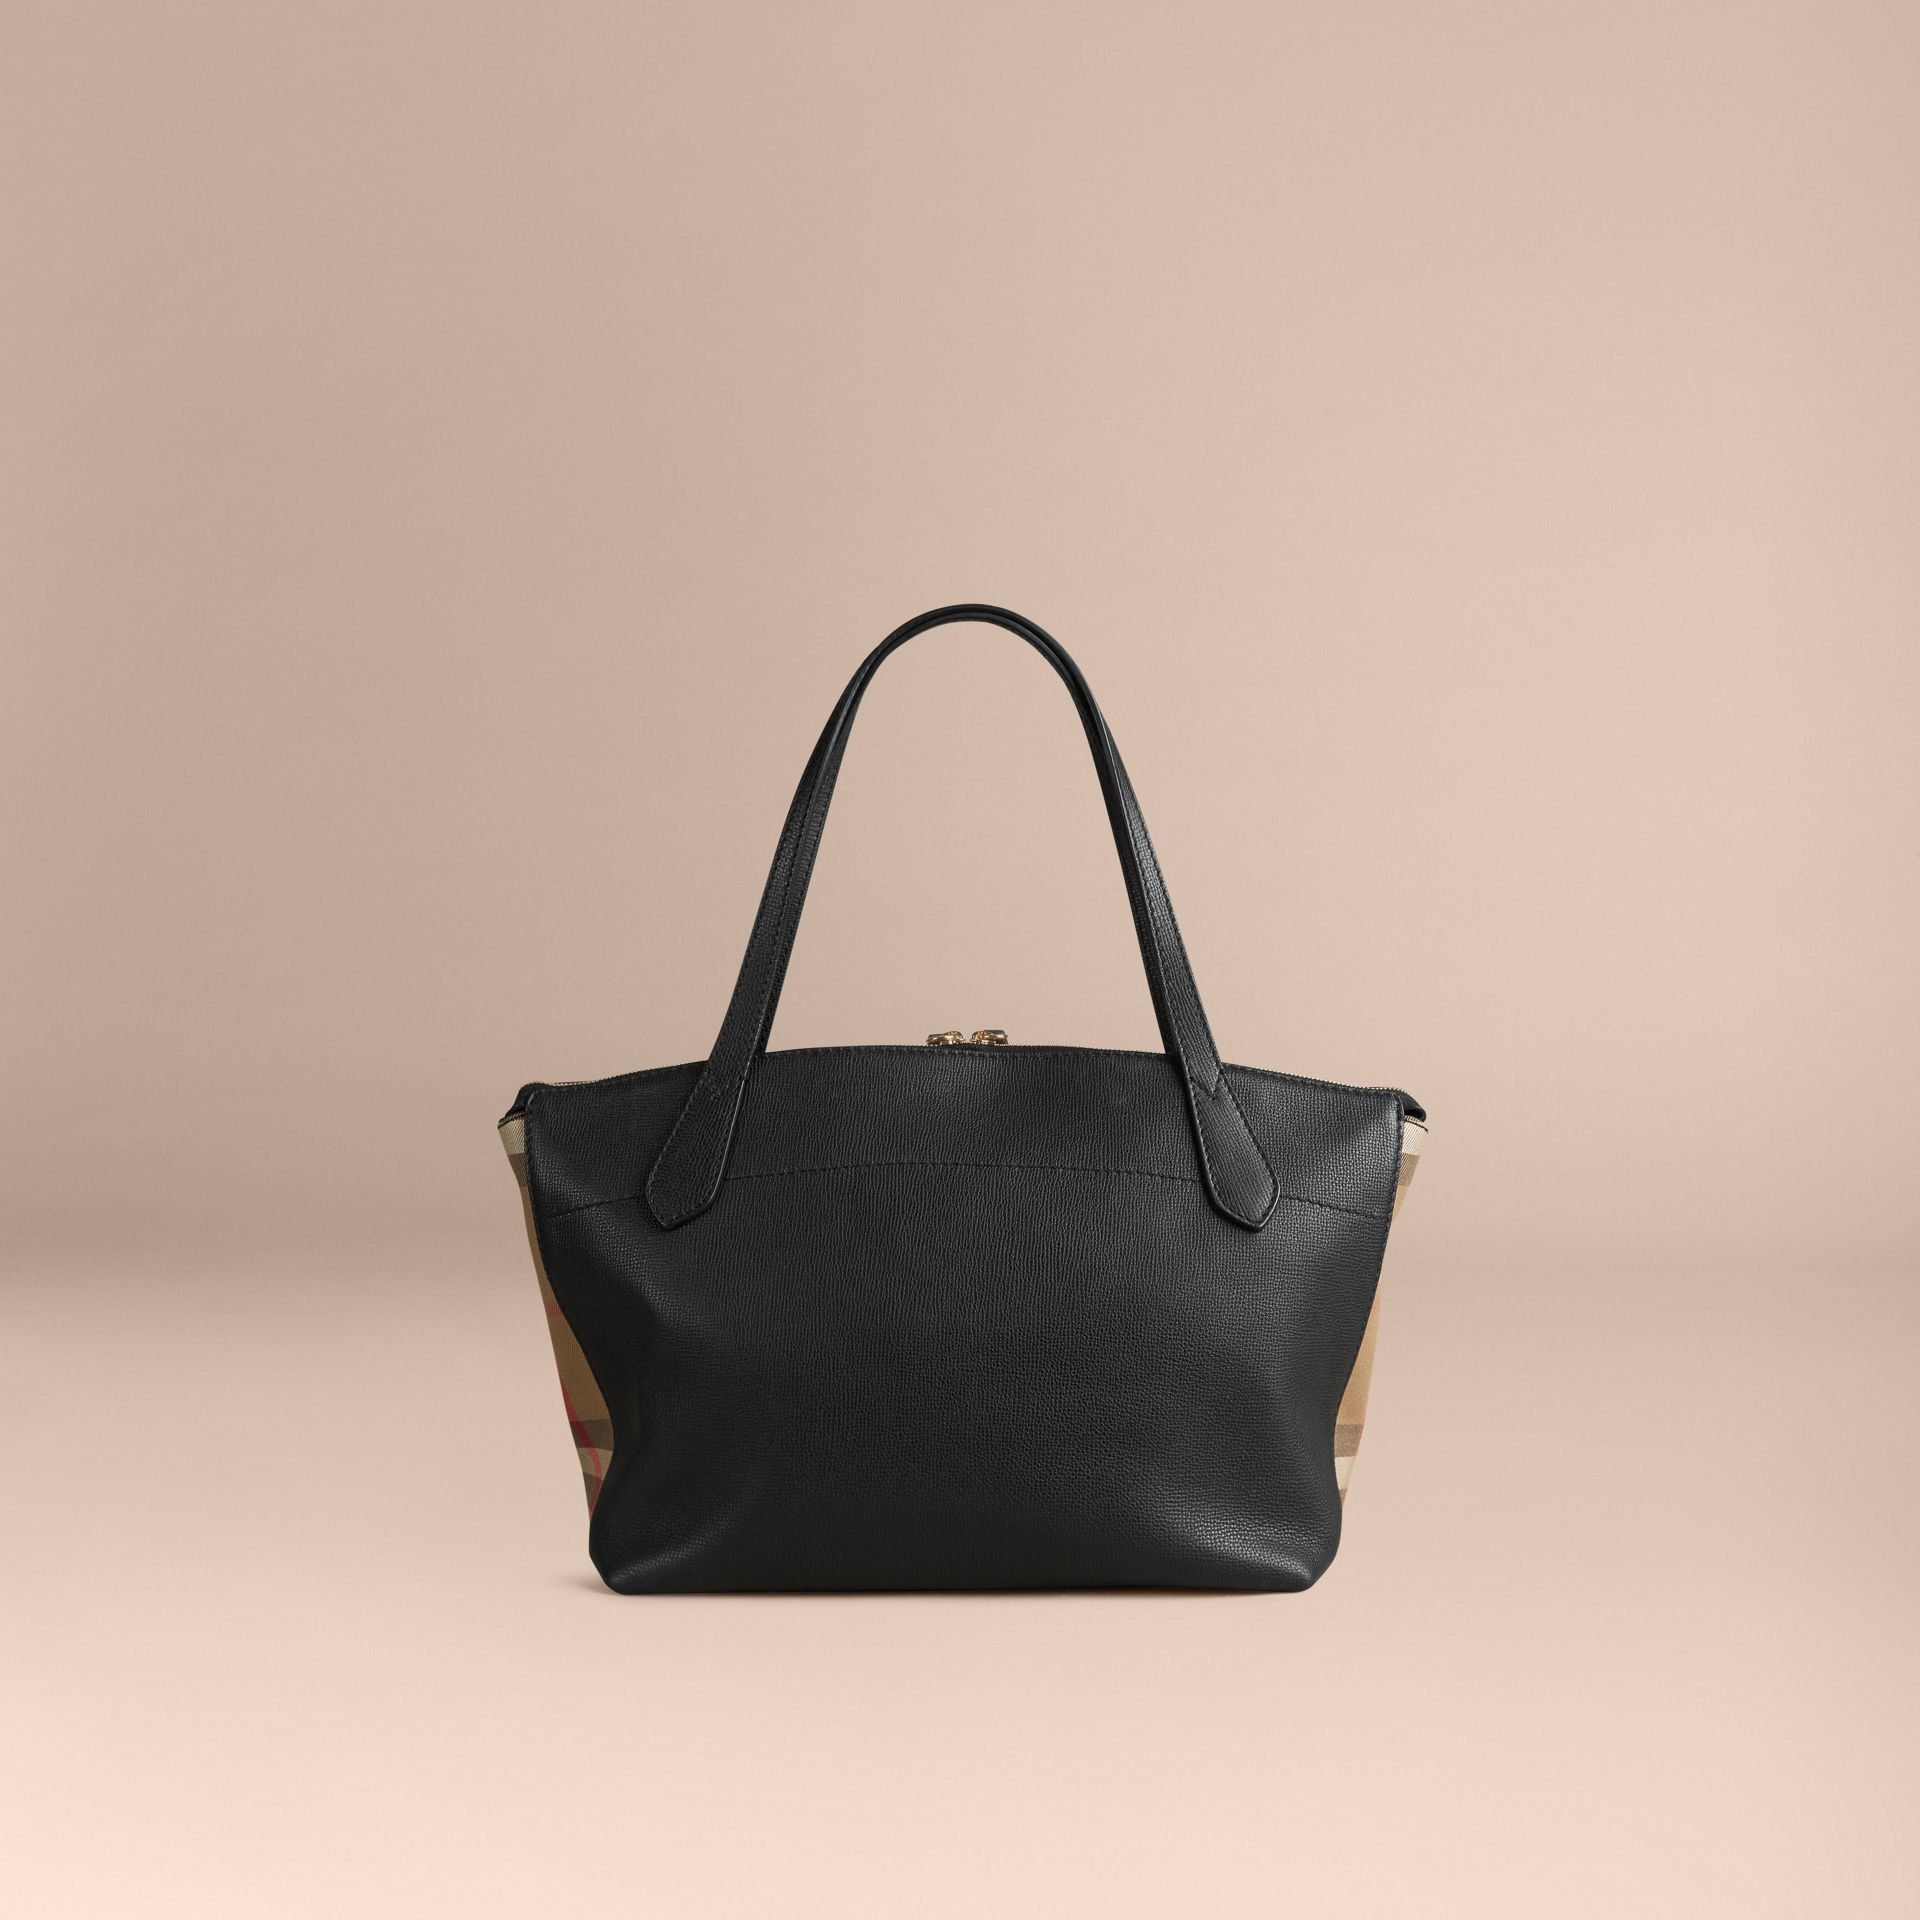 Sac tote medium en cuir et coton House check - Femme | Burberry - photo de la galerie 4